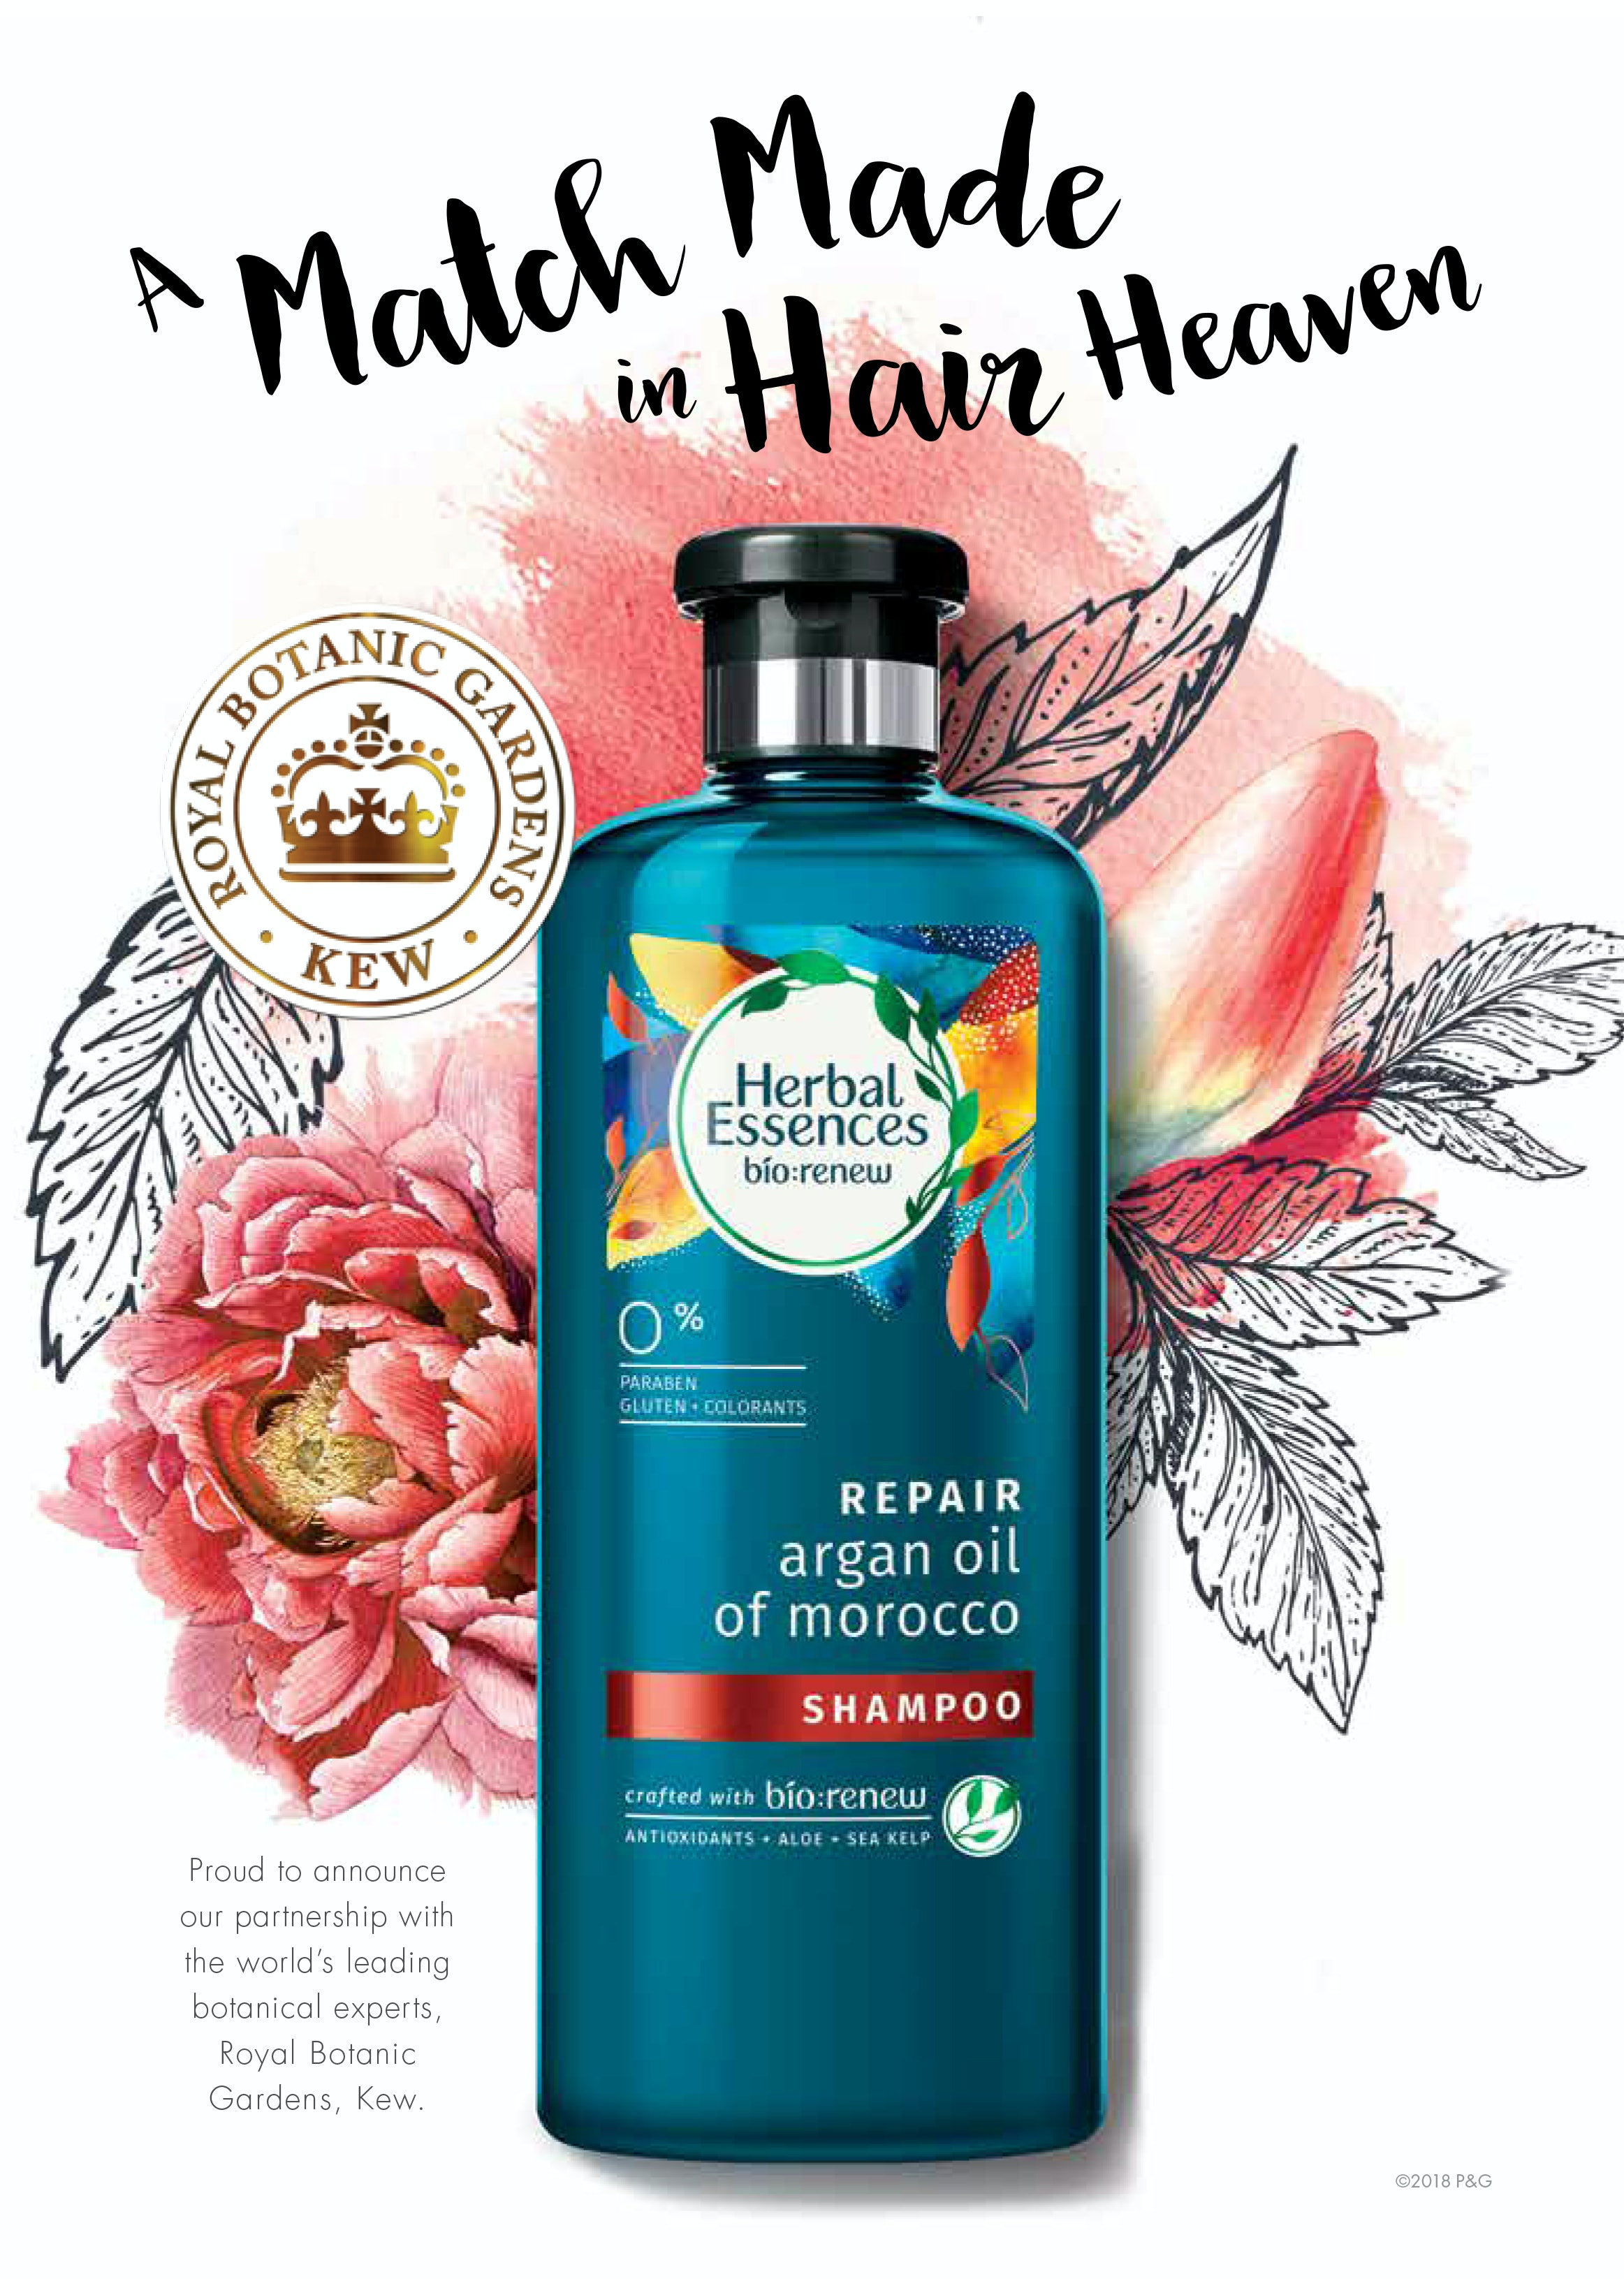 Herbal essence teen model search